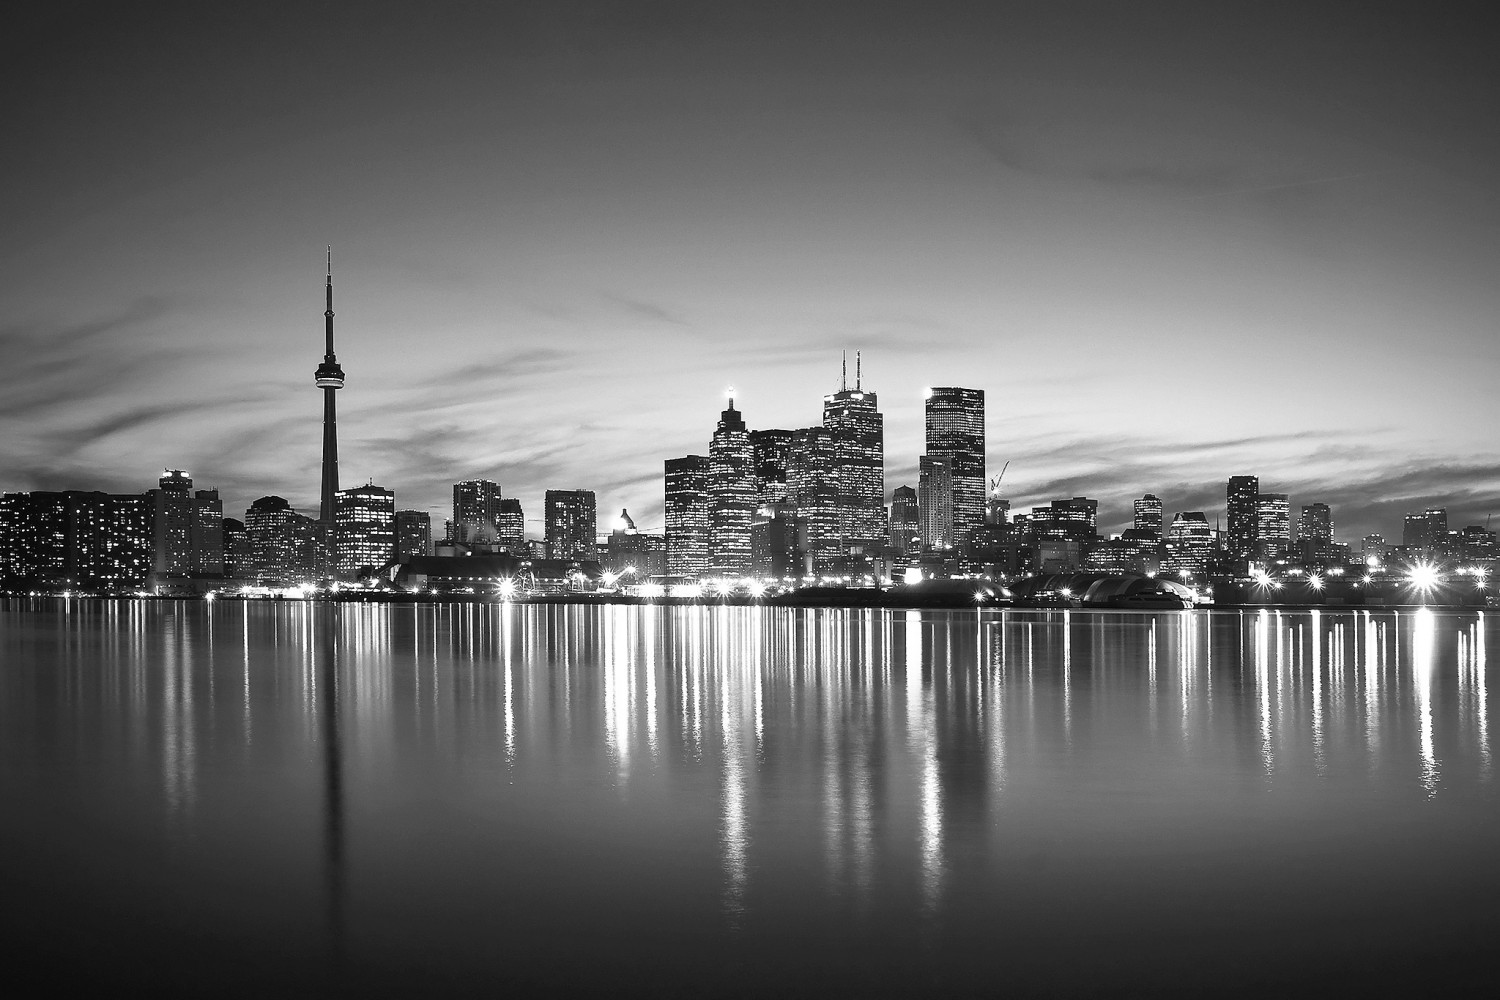 Explore Toronto with 500px Co-Founder Evgeny Tchebotarev in the Lead